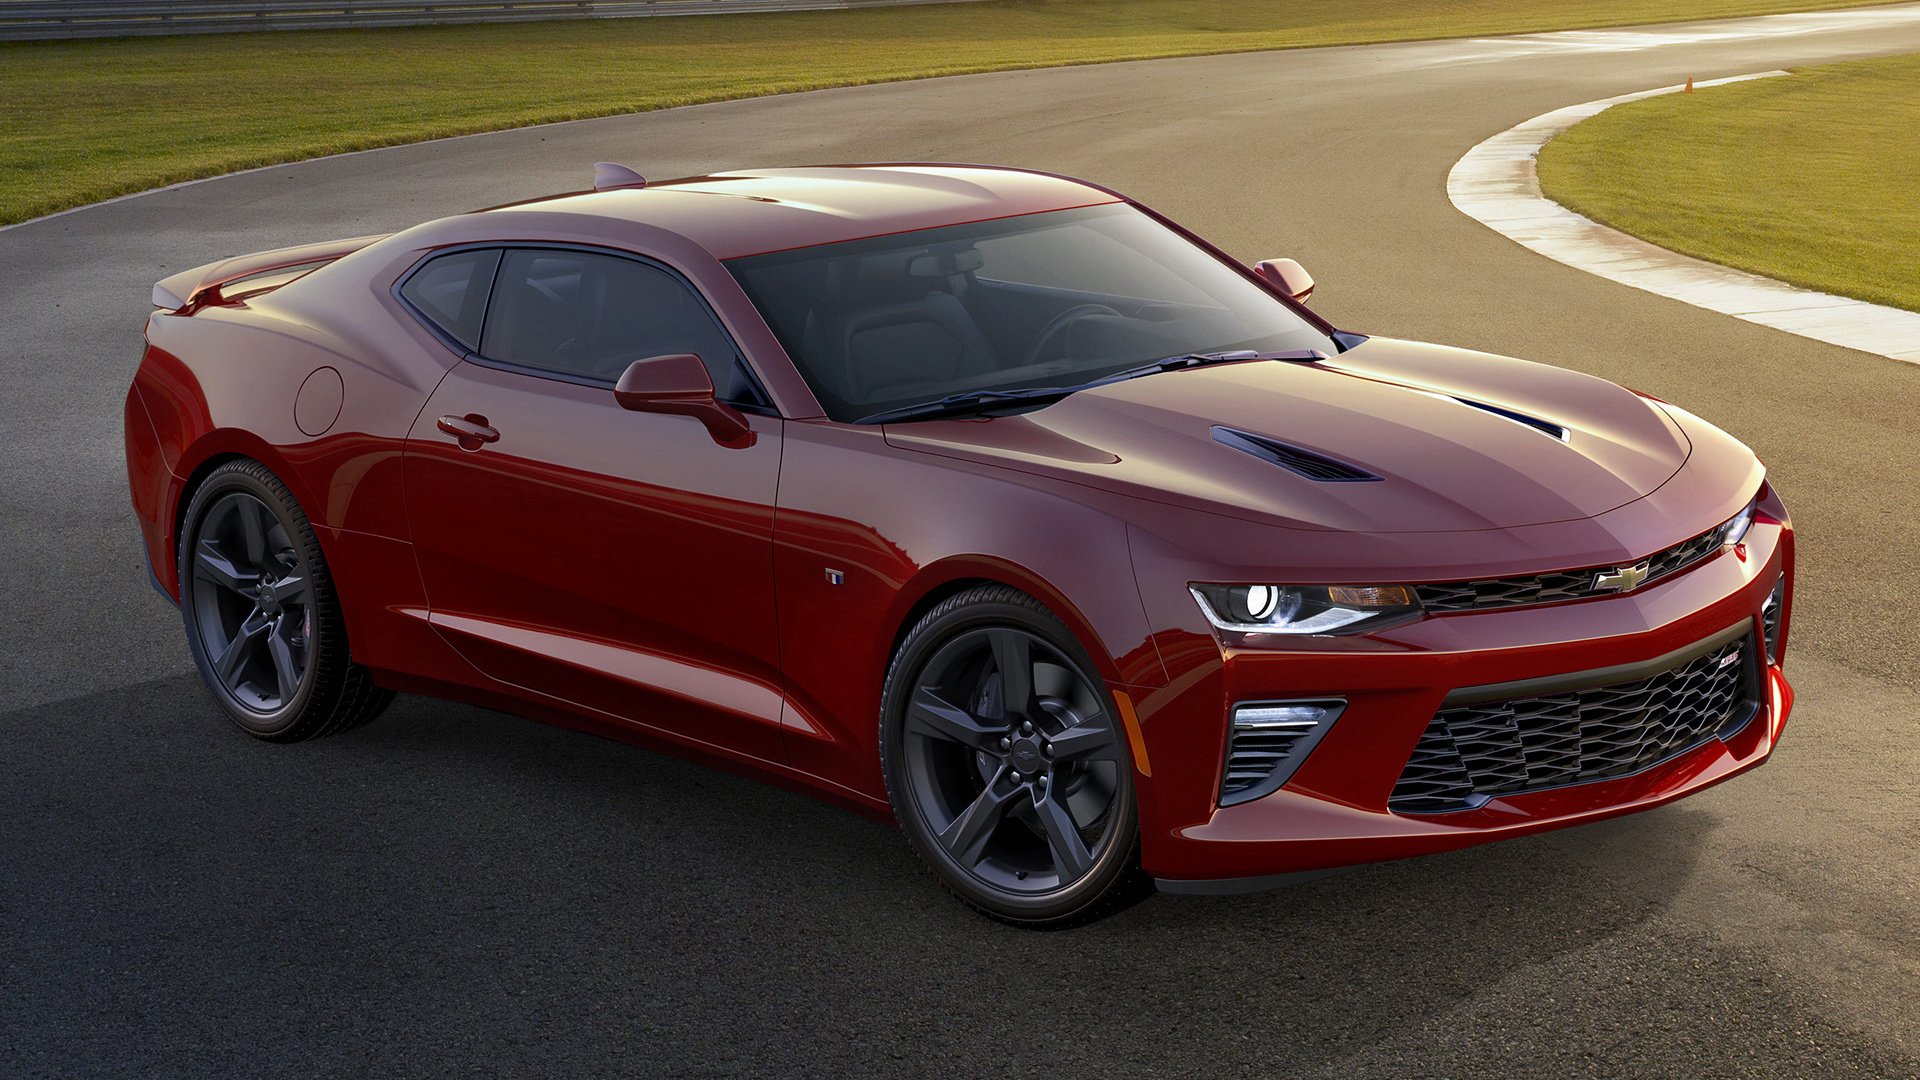 Camaro 2018 Ss >> Chevrolet Camaro SS (2016) Wallpapers and HD Images - Car Pixel